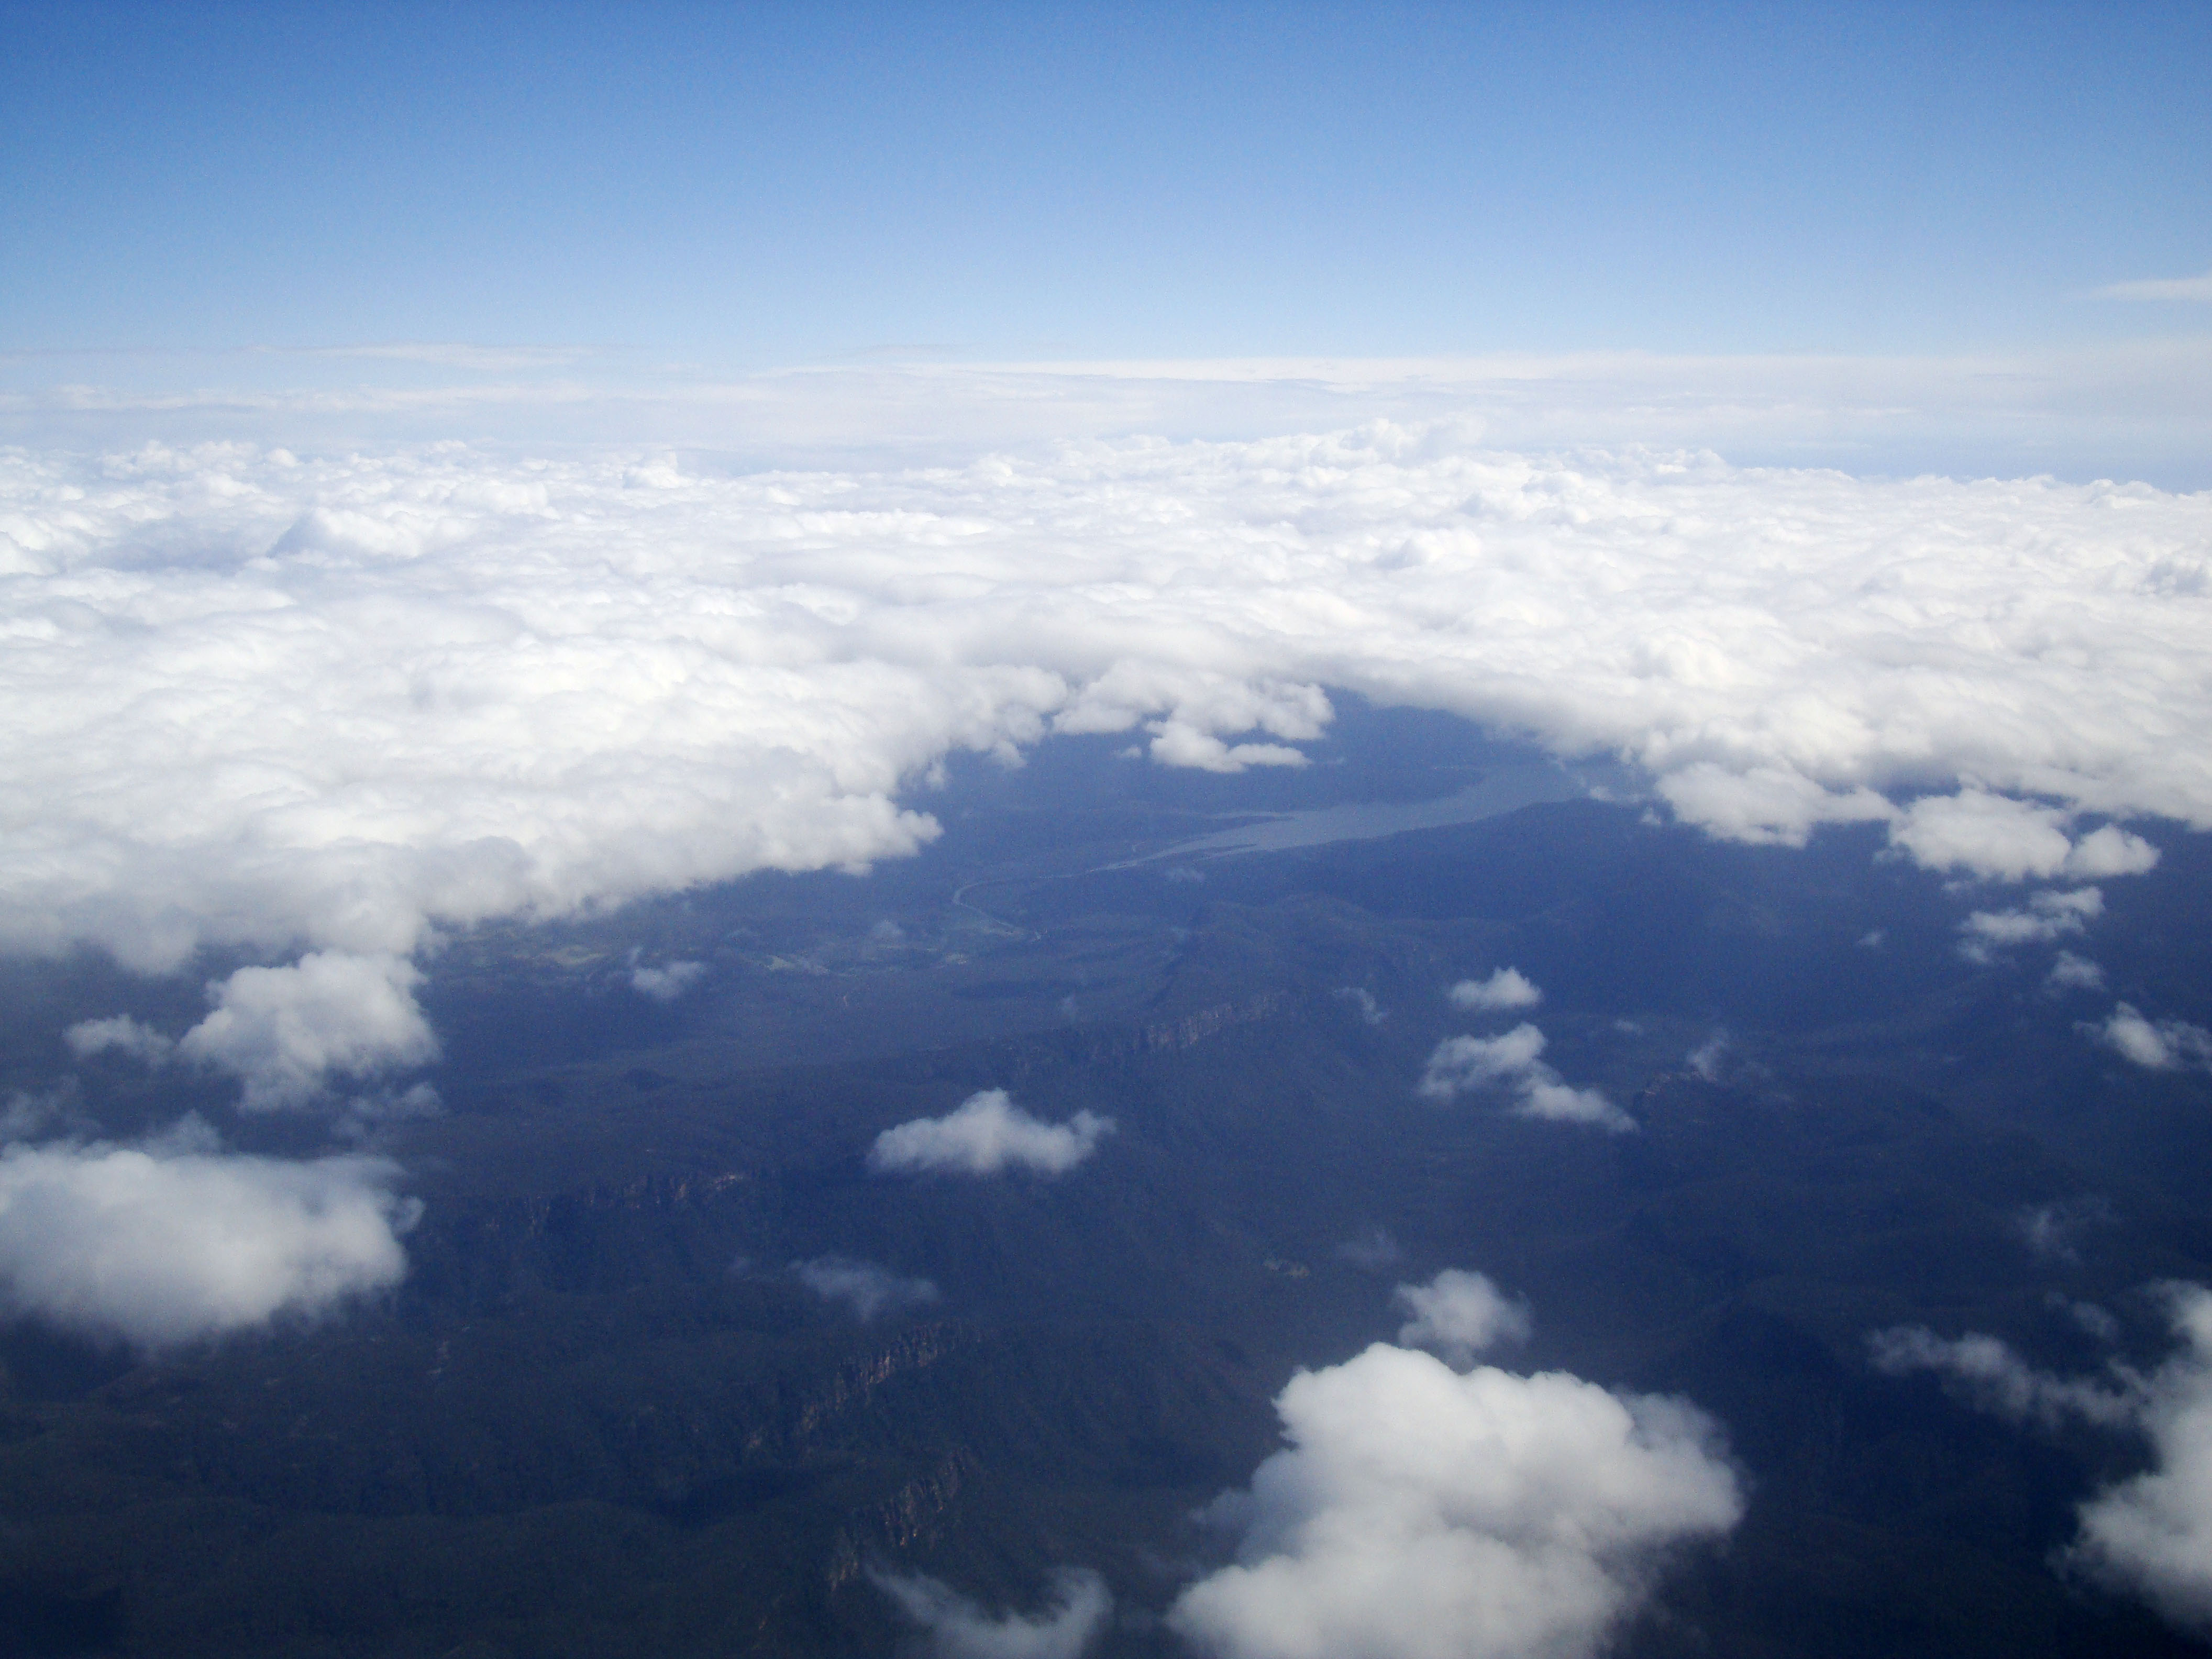 Textures Clouds Formations Sky Storms Weather Phenomena Aerial Views 12